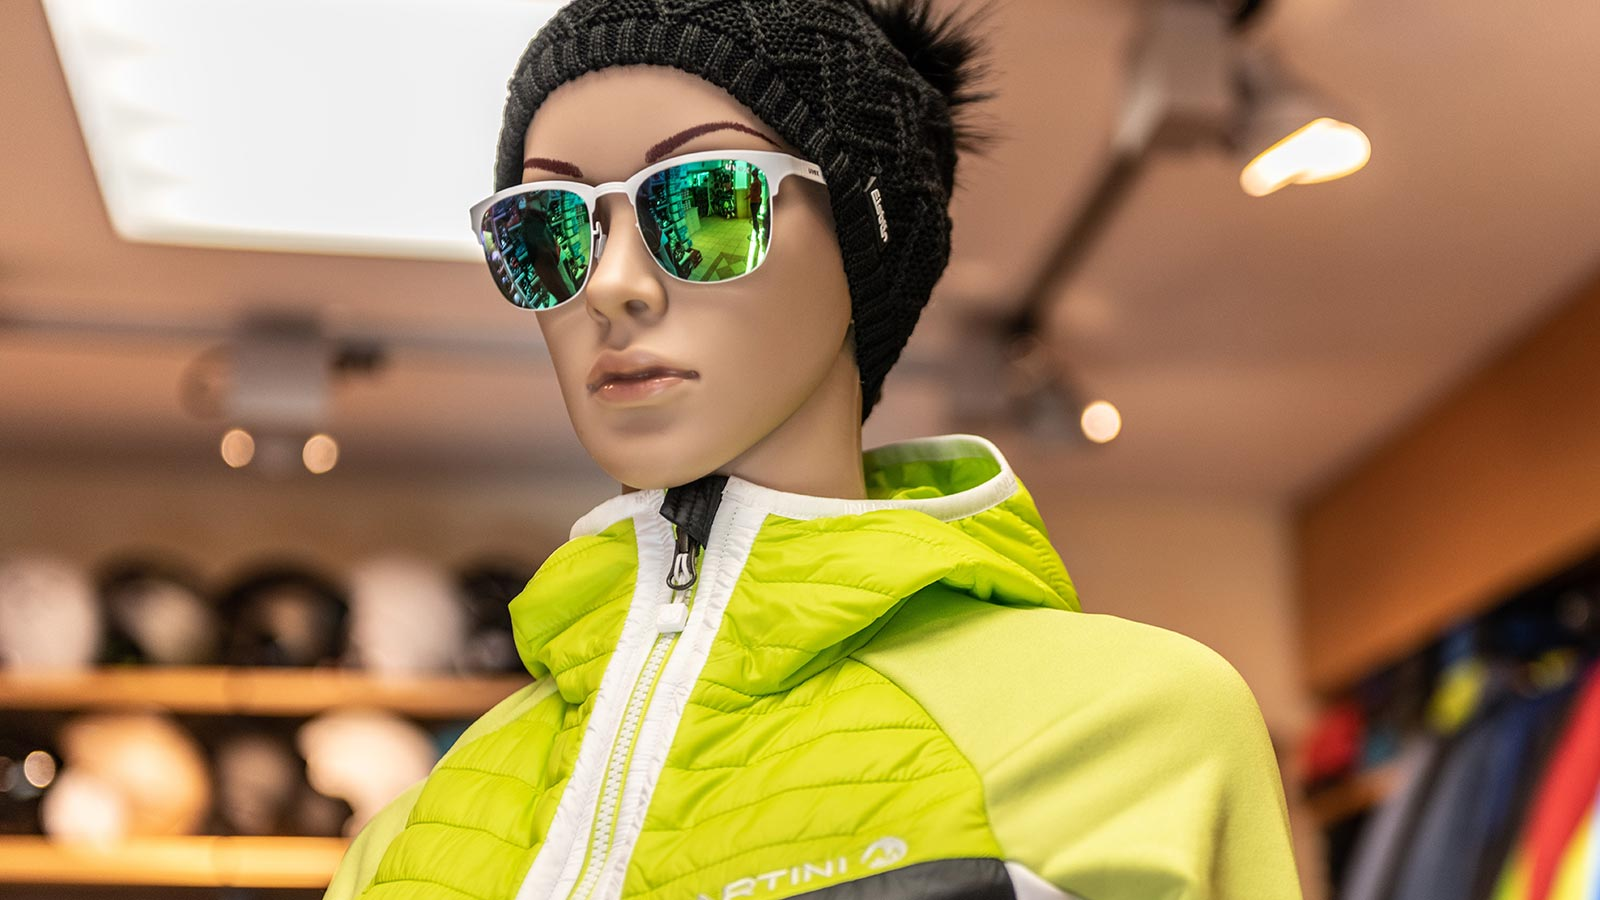 One of the mannequins of the ski and snowboard shop in Alta Badia